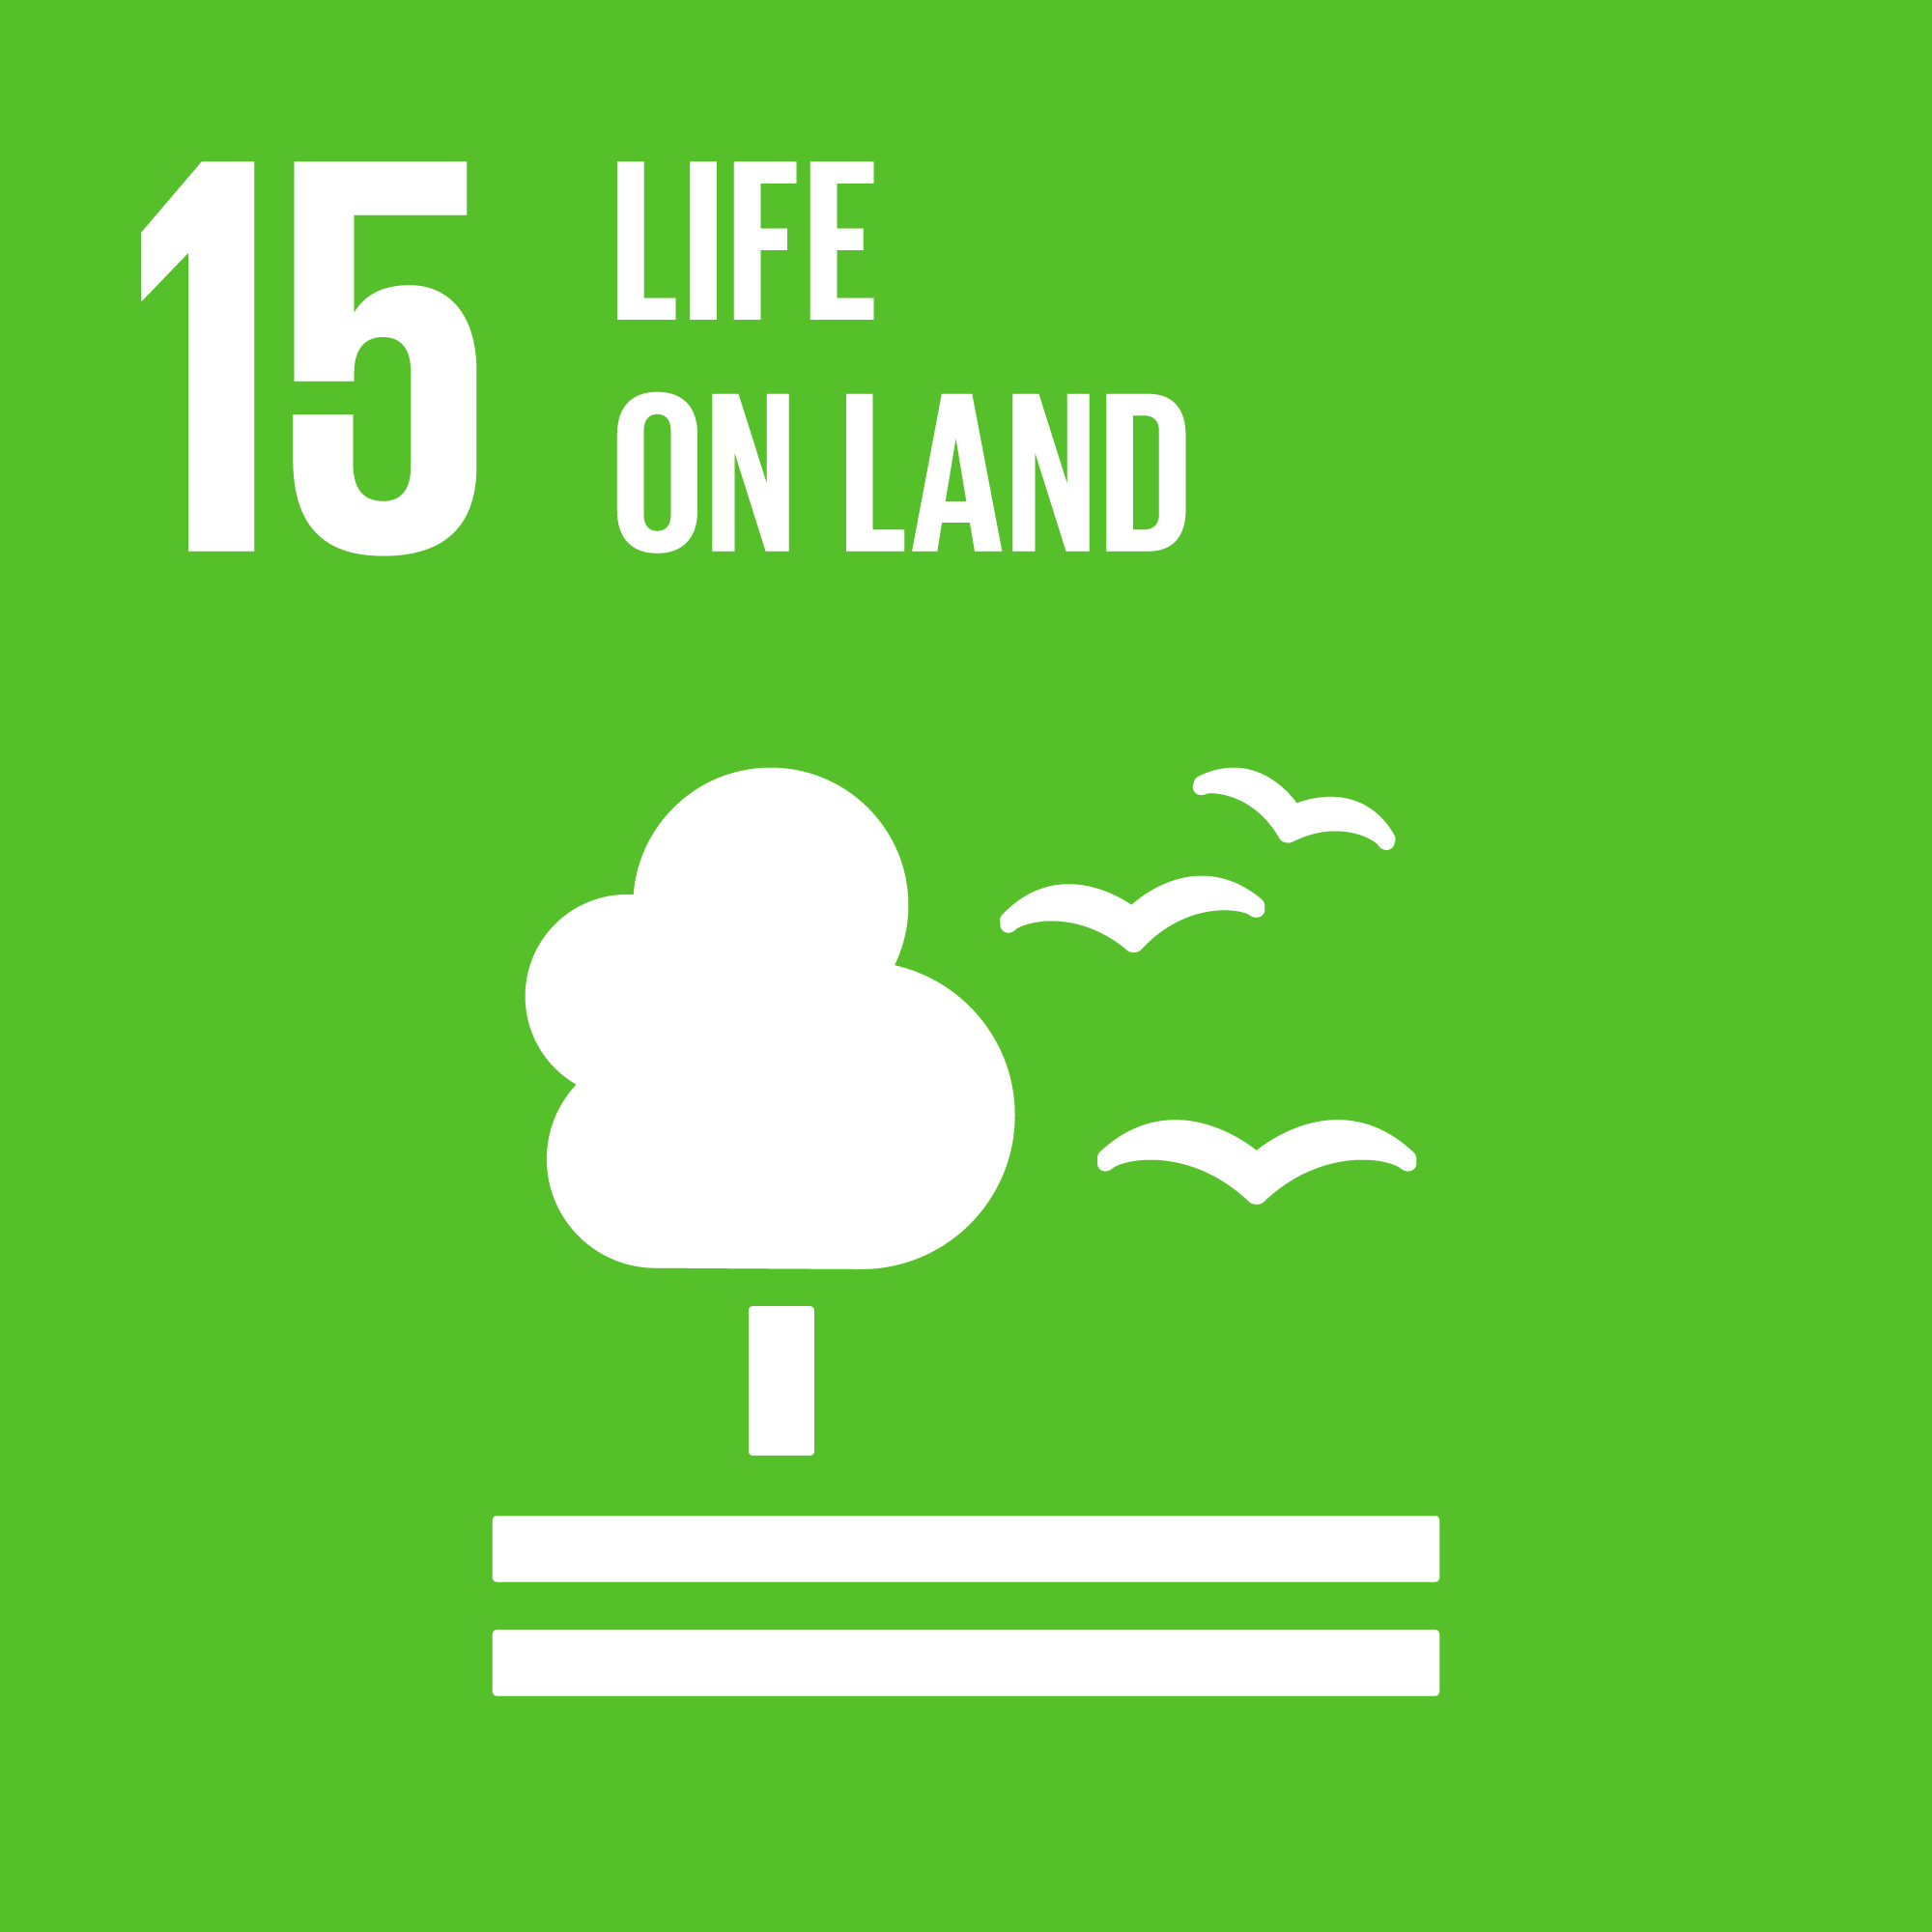 Goal 15. Protect, restore and promote sustainable use of terrestrial ecosystems, sustainably manage forests, combat desertification, and halt and reverse land degradation and halt biodiversity loss    12 Targets    14 Indicators